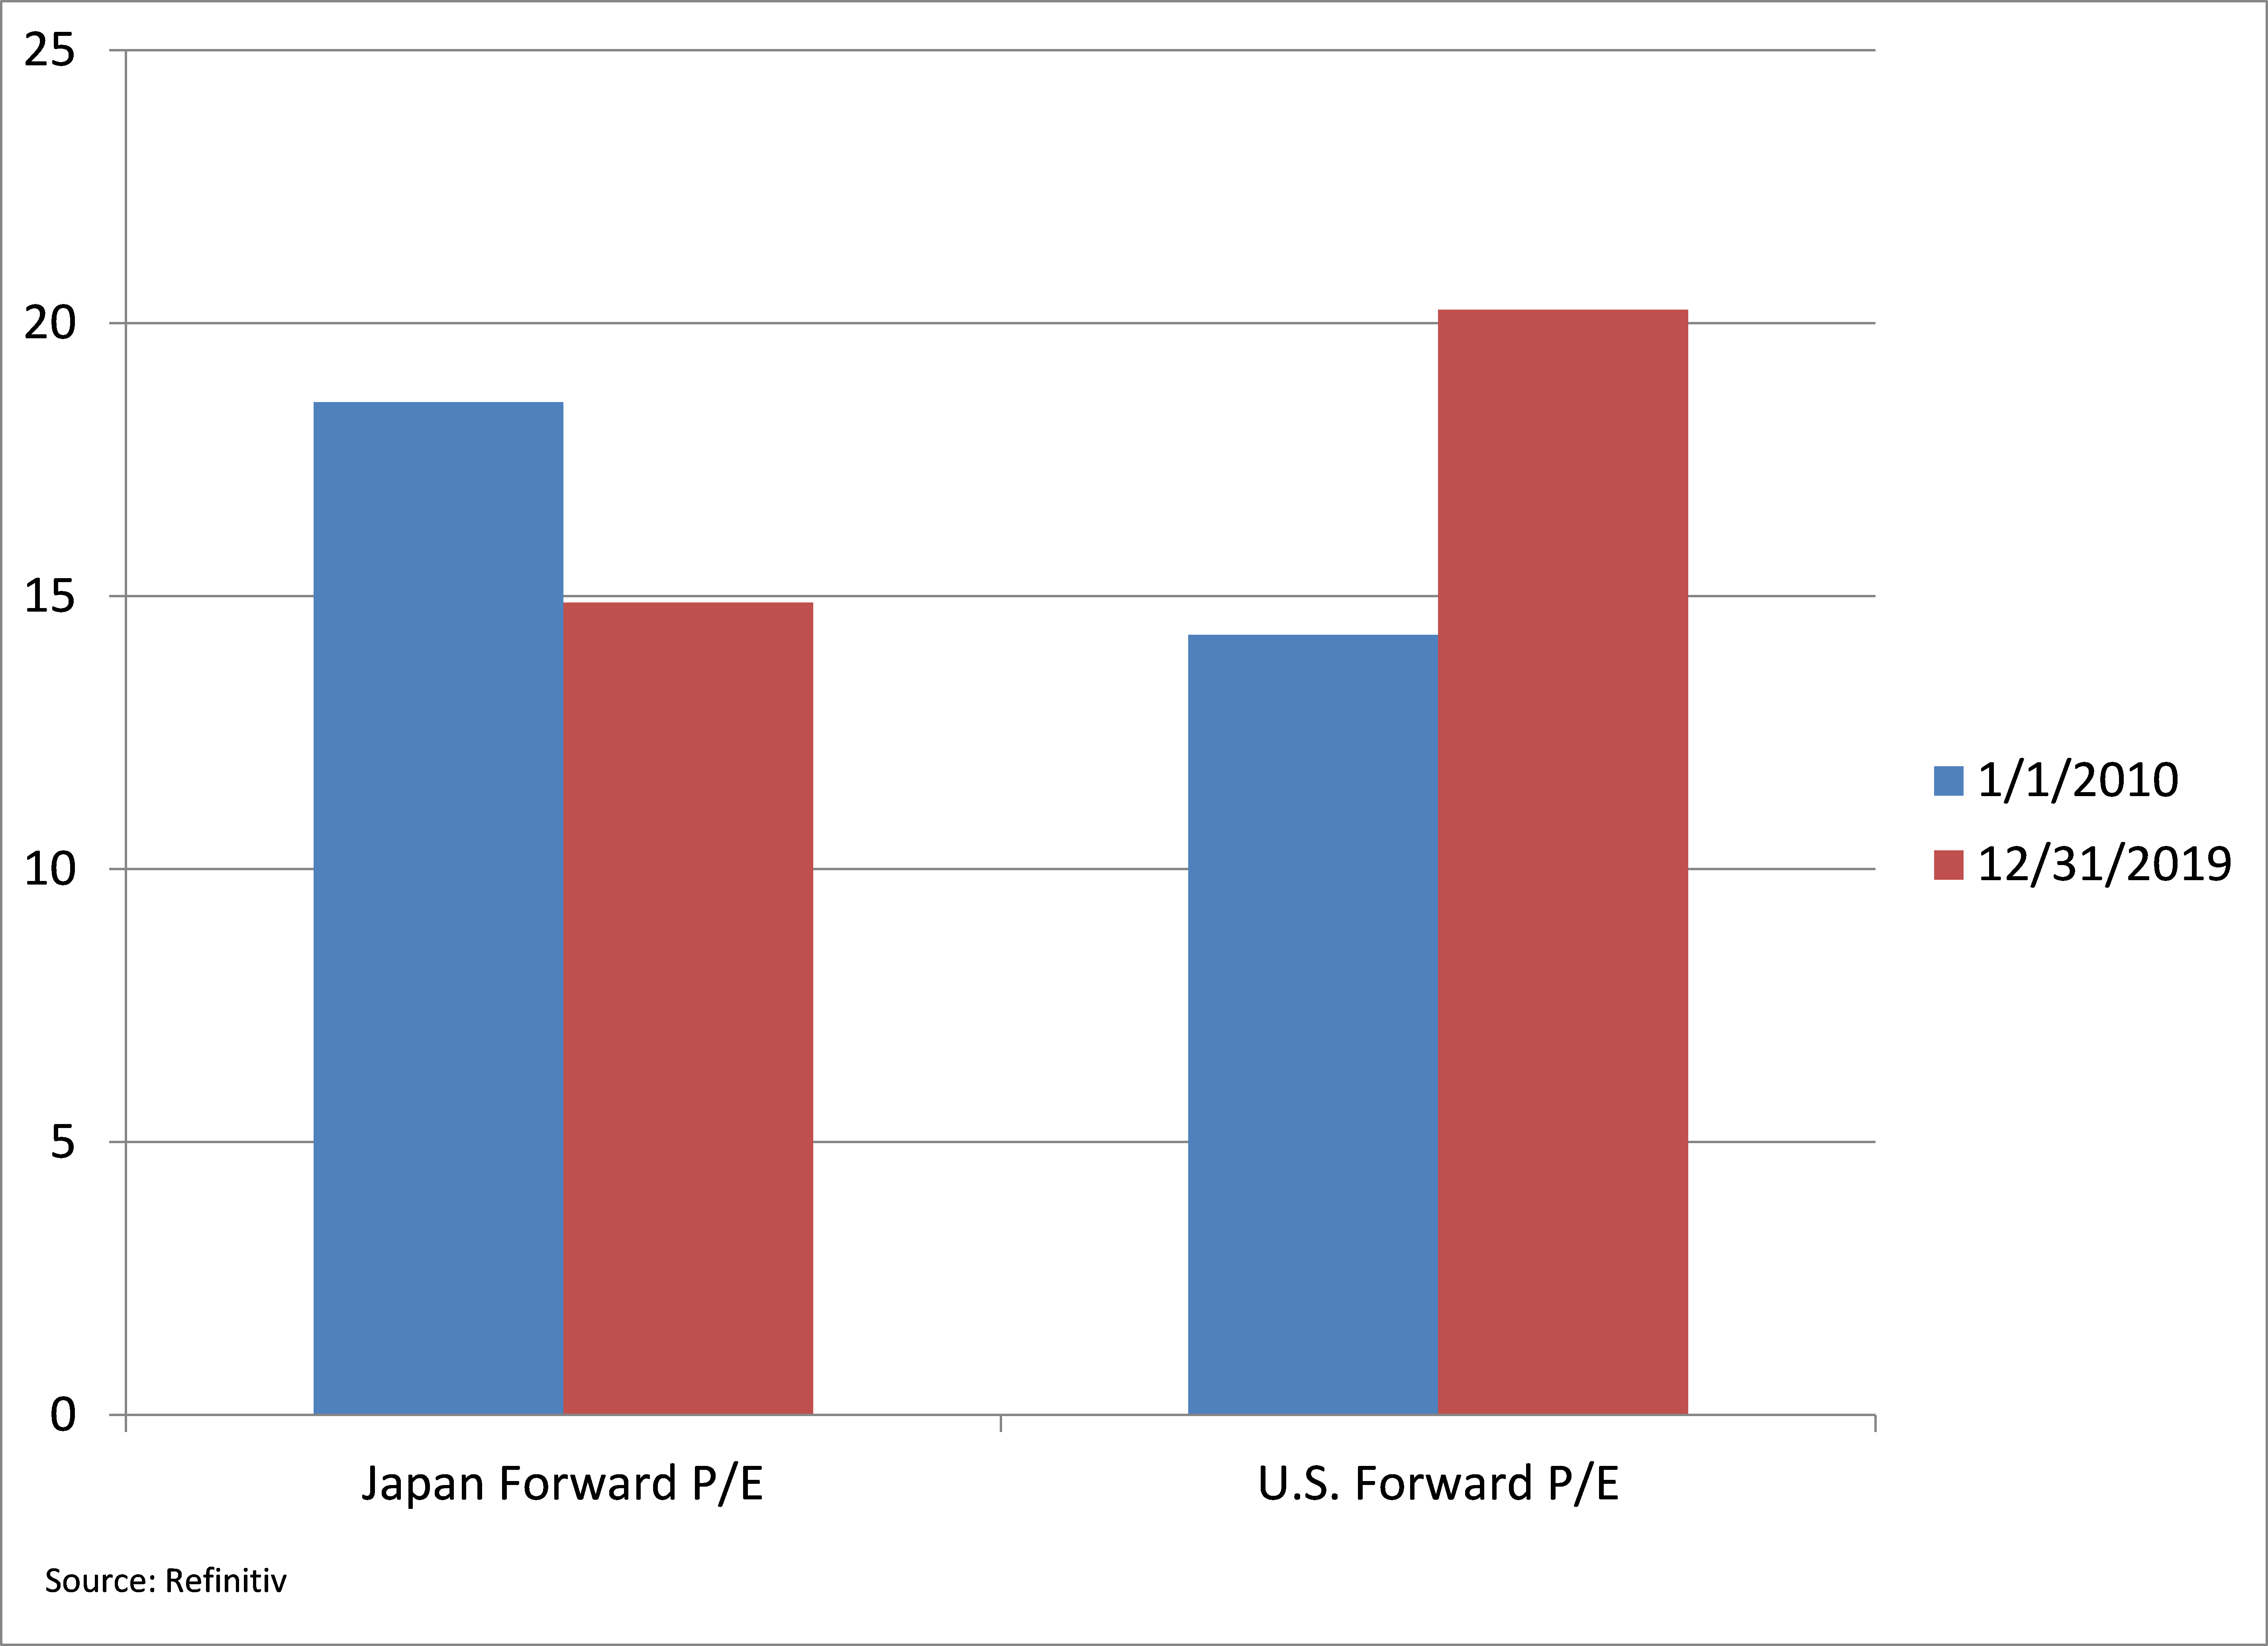 Japan Forward P/E compared to U.S. Forward P/E